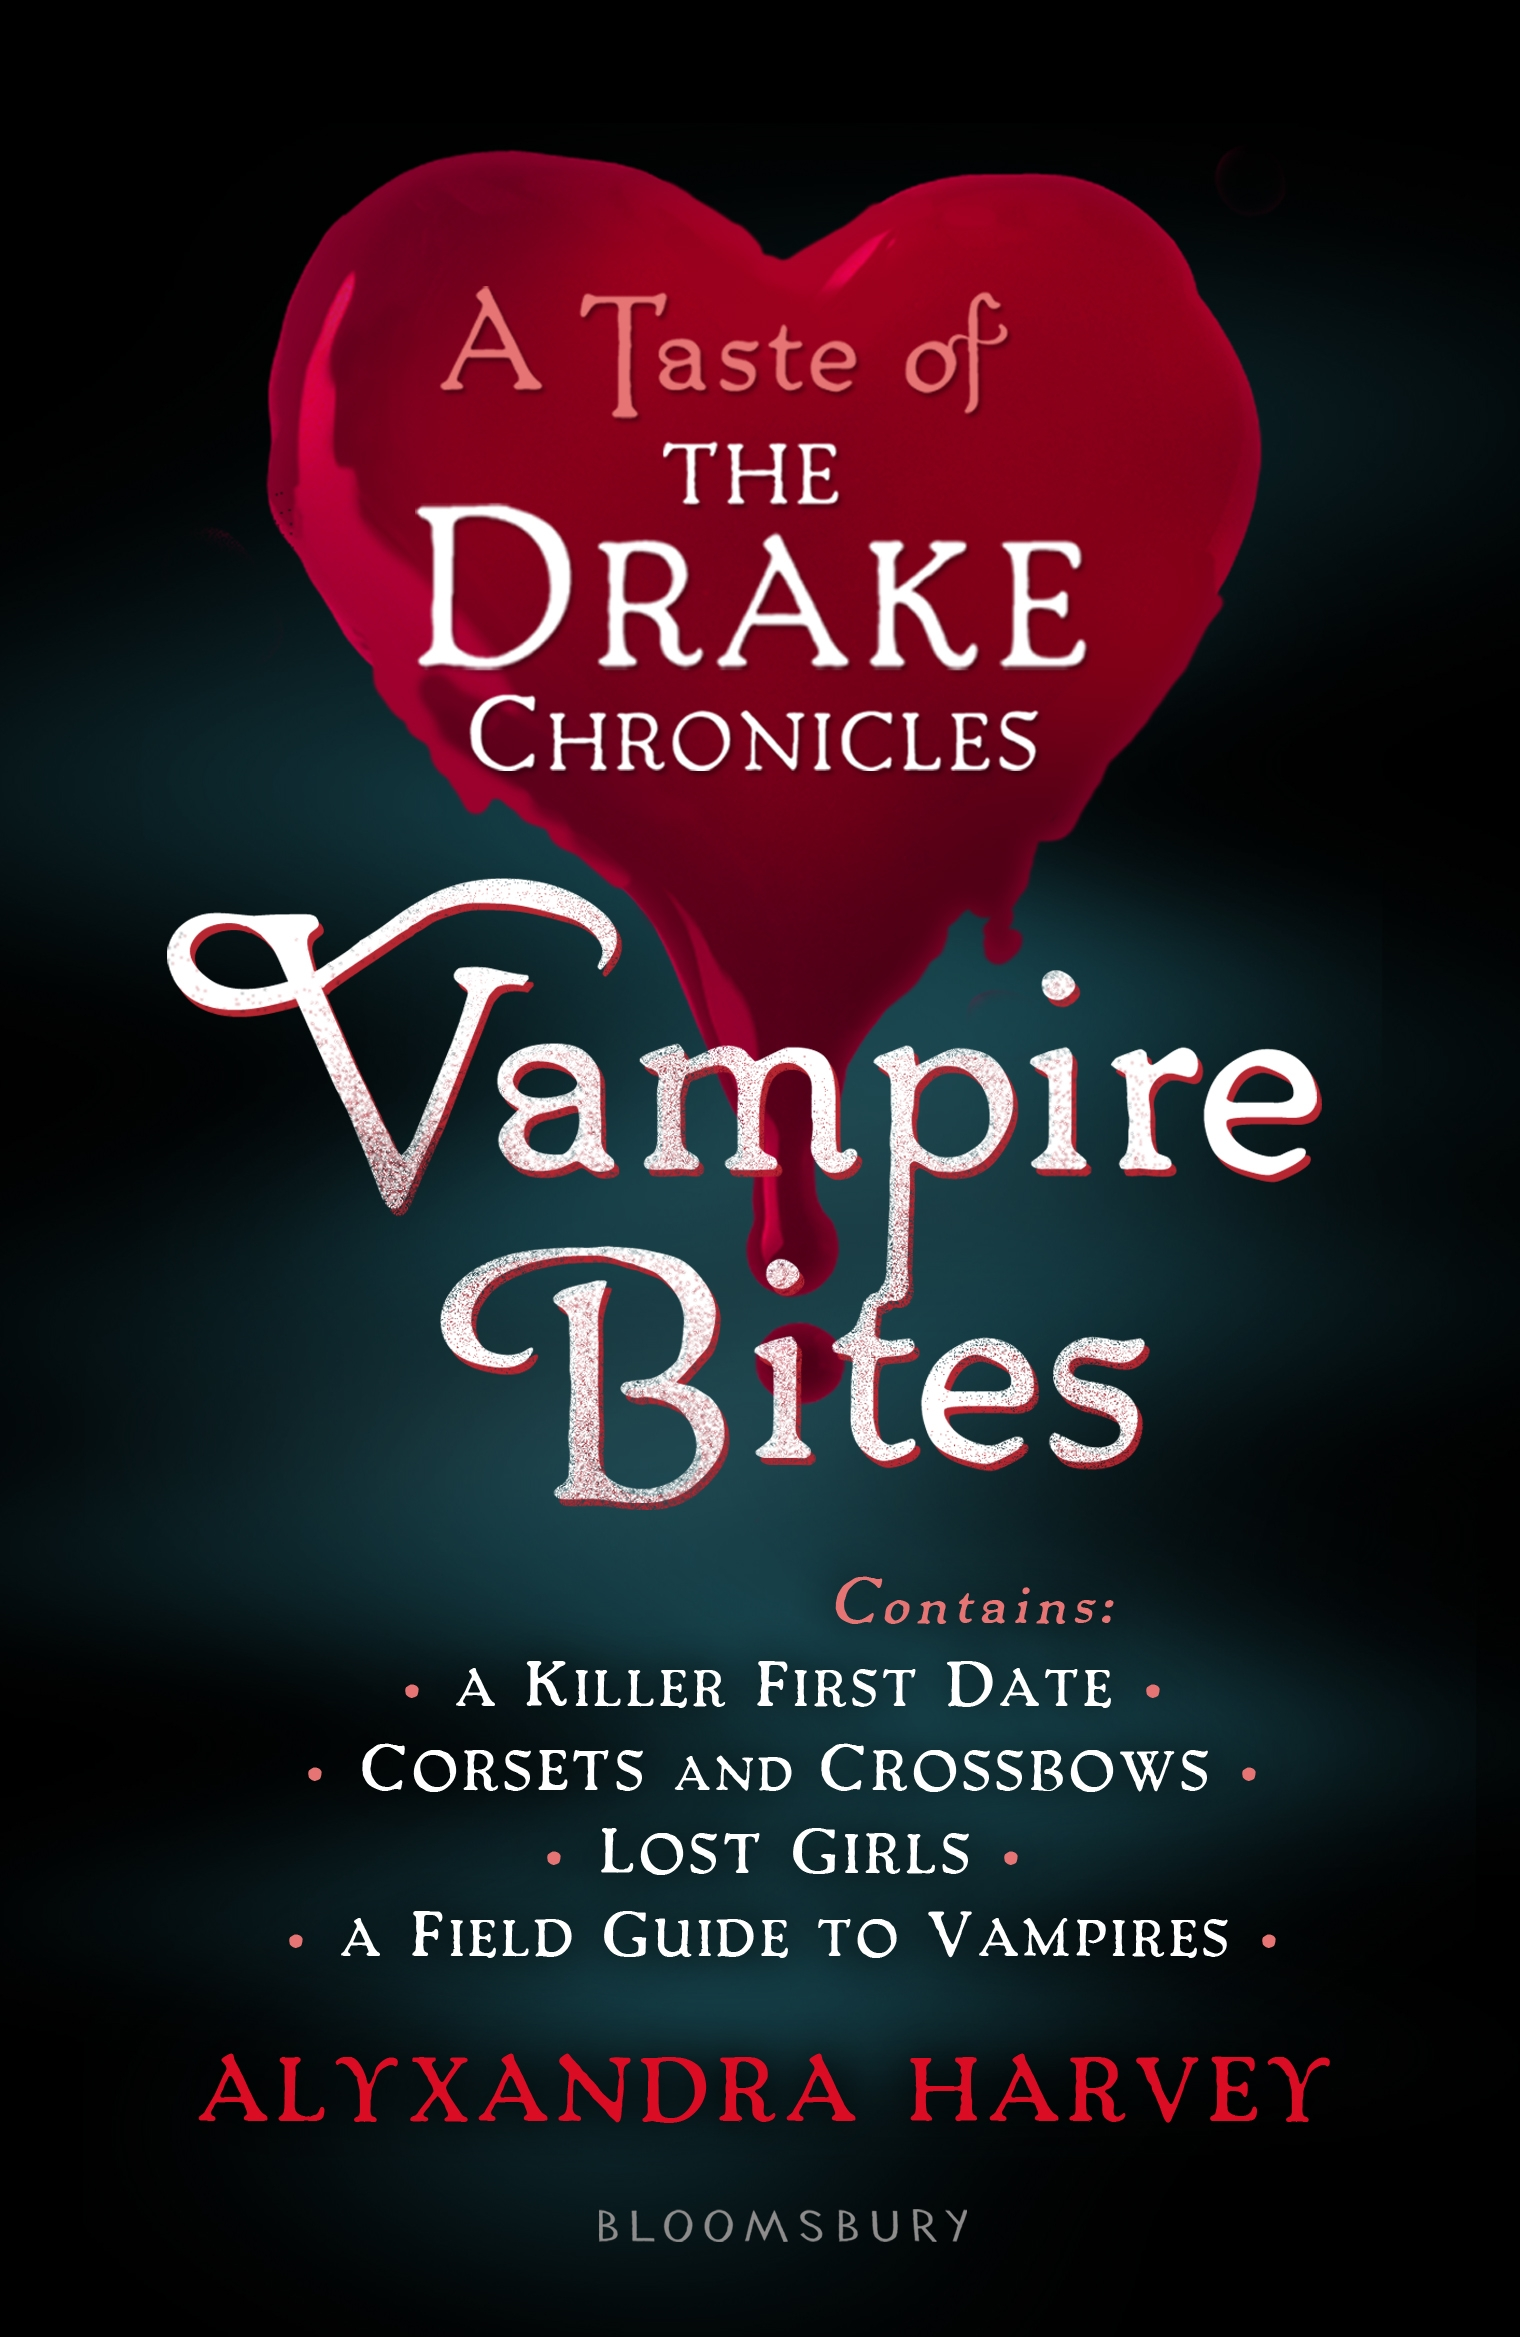 Vampire Bites: A Taste of the Drake Chronicles